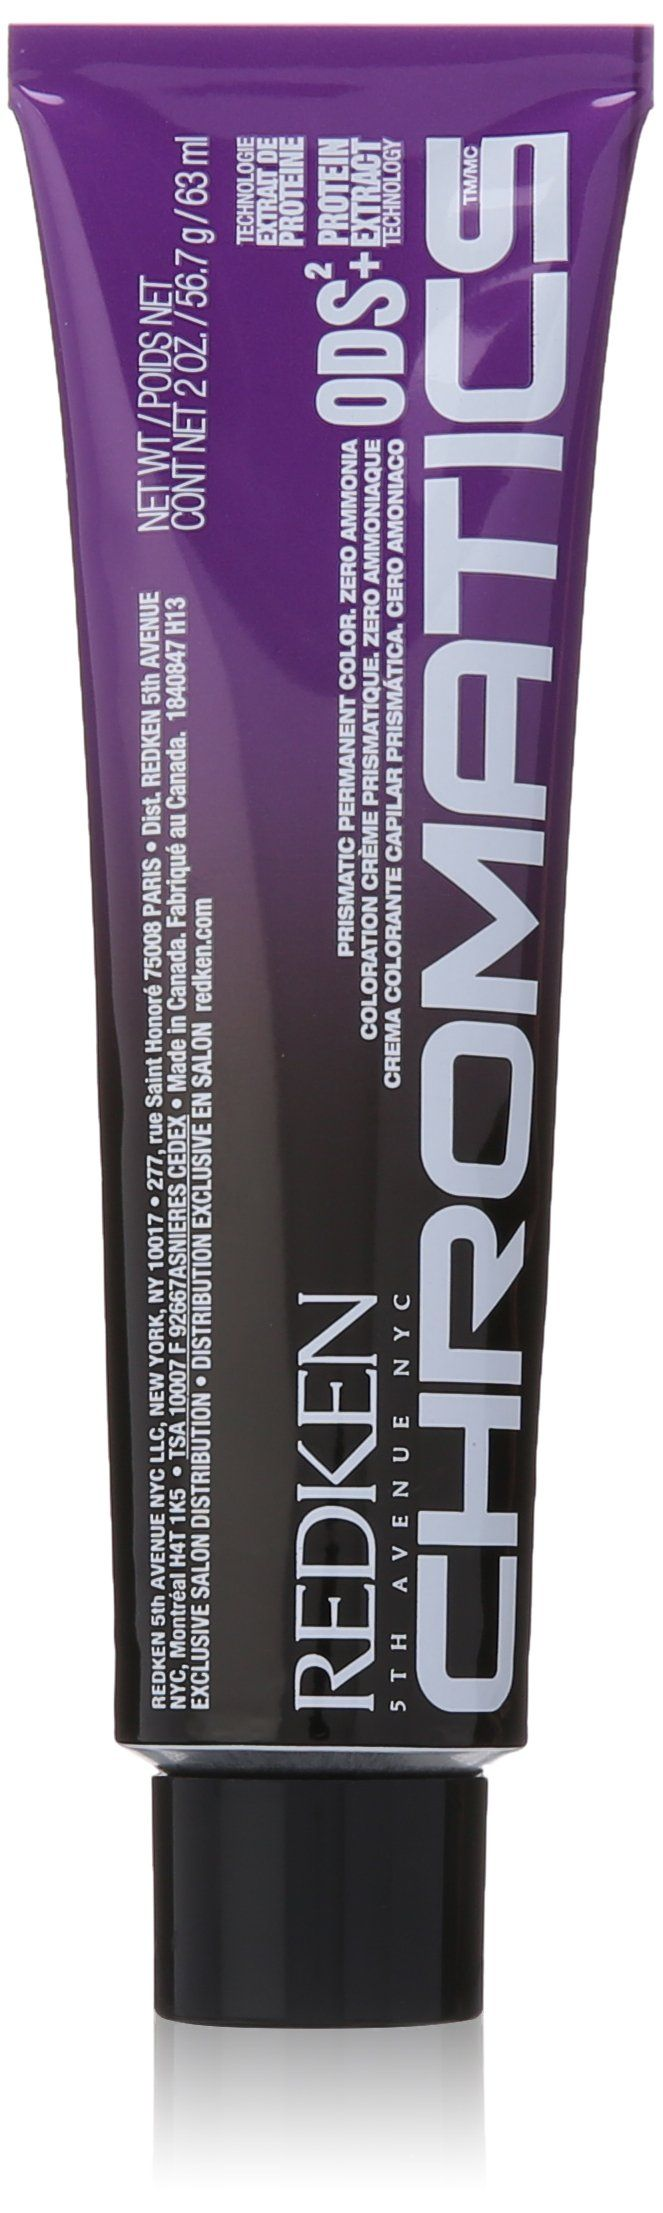 Redken Chromatics Prismatic Hair Color Be Sure To Check Out This Awesome Product It Is An Affiliate Link To In 2020 Redken Chromatics Hair Color Reviews Hair Color